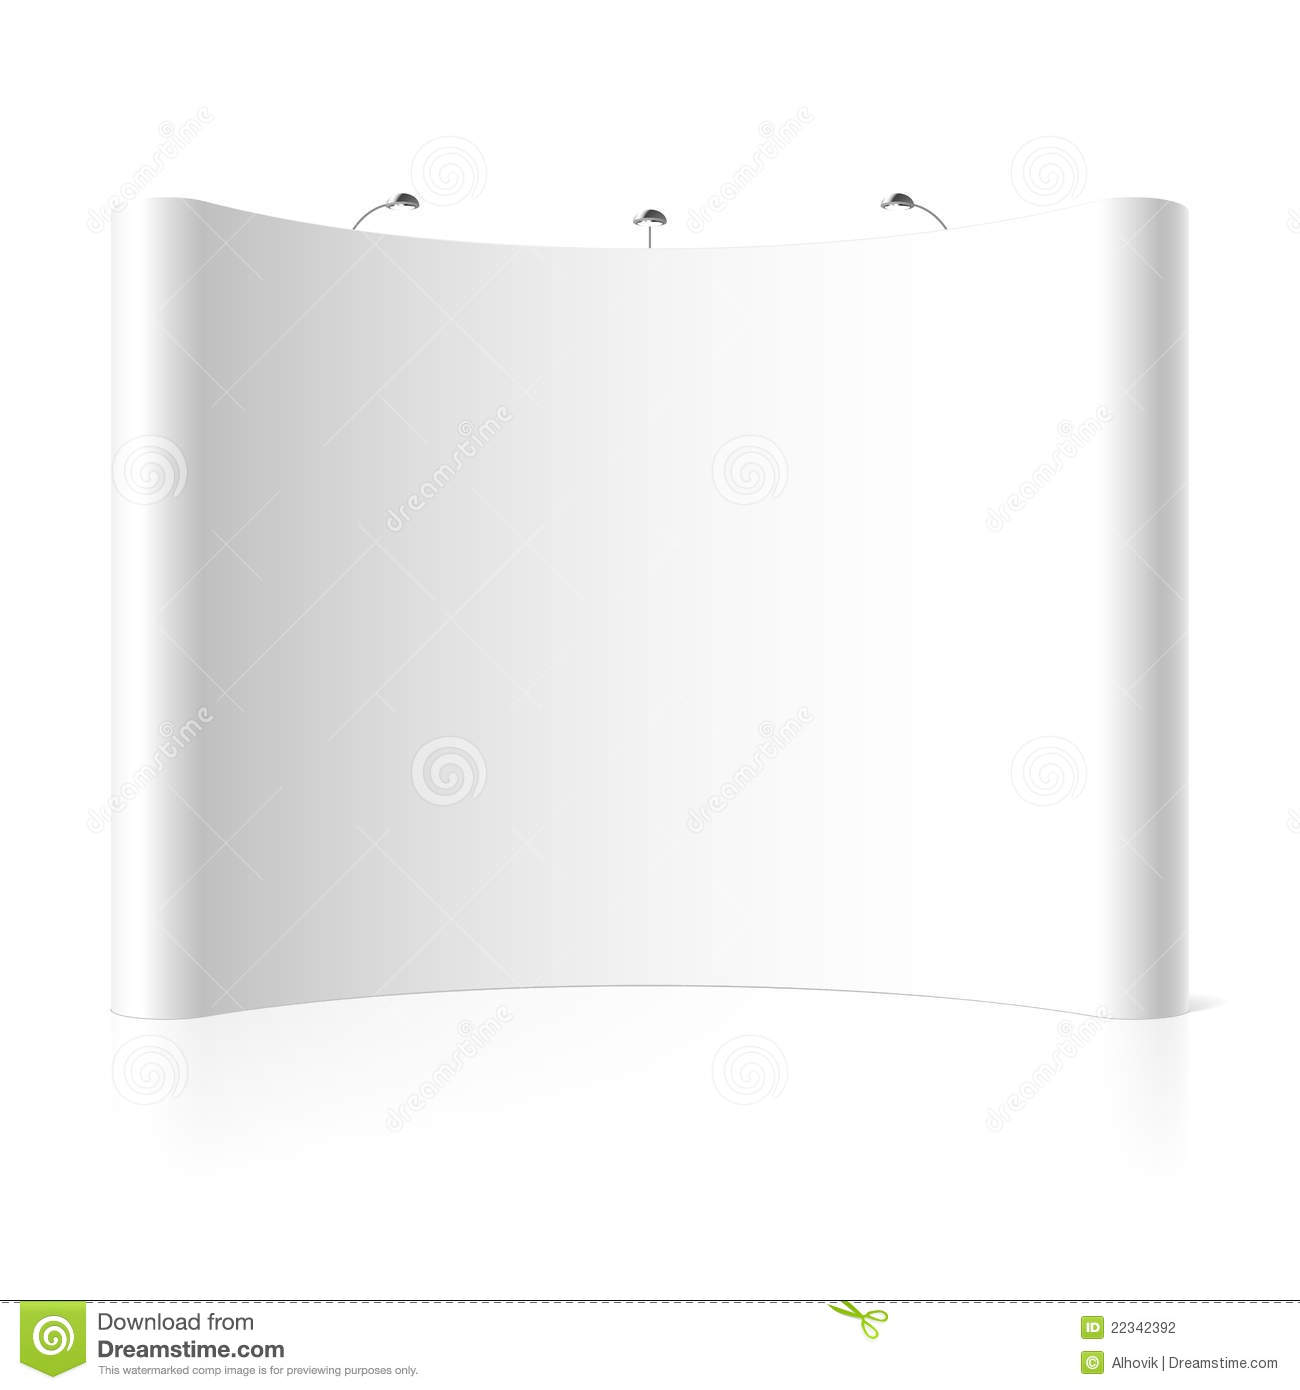 Trade Exhibition Stand Vector : Trade exhibition stand stock vector illustration of